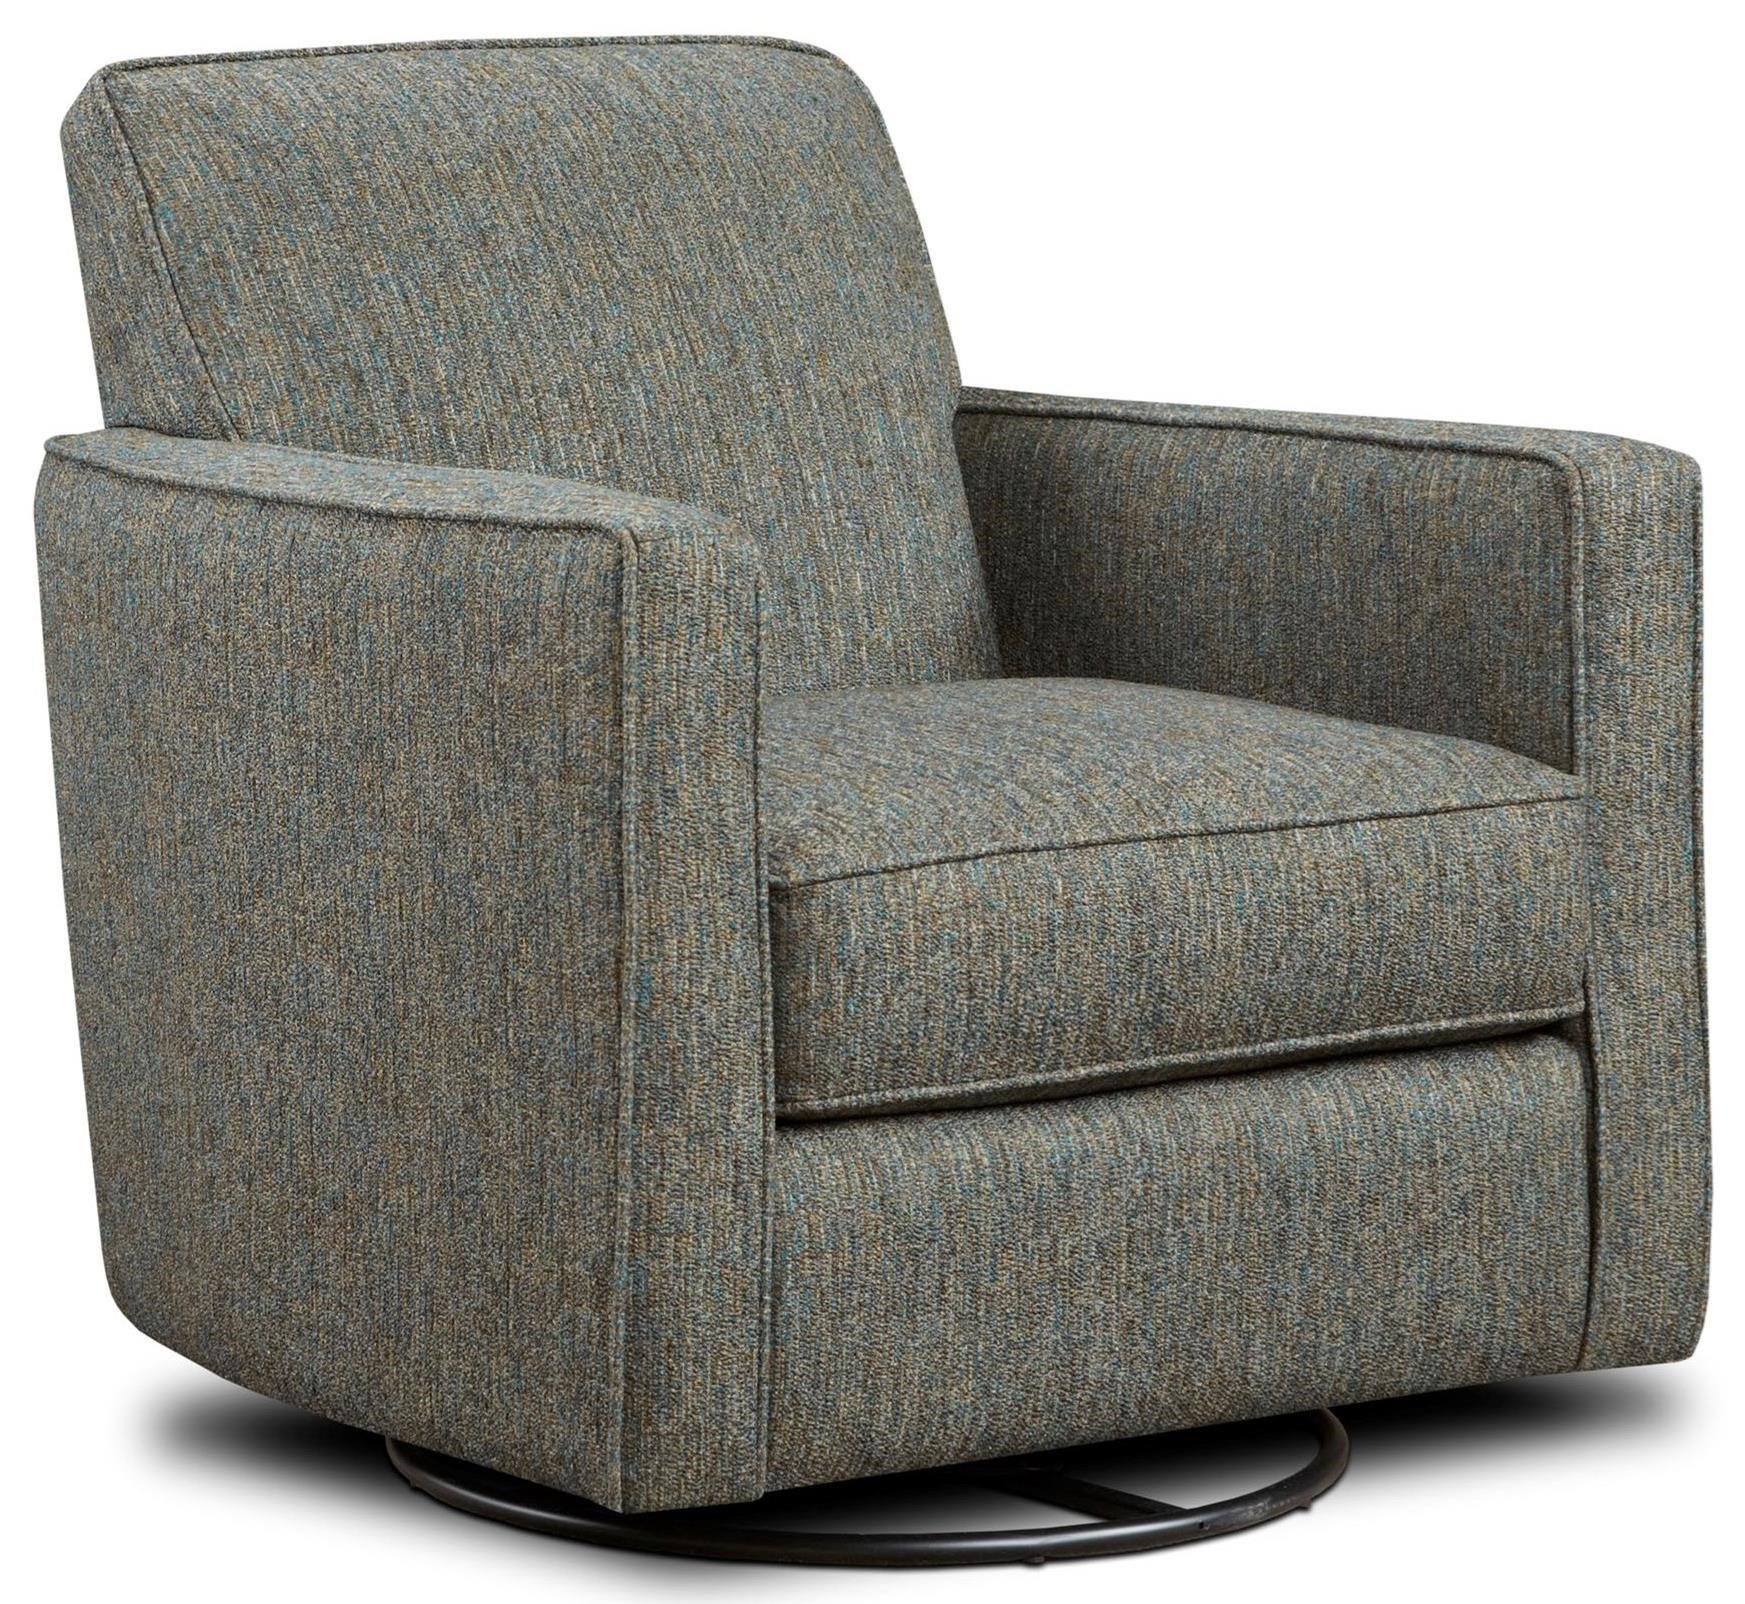 Haley Jordan 402-G Swivel Glider - Item Number: 402-GAllspice Sisal